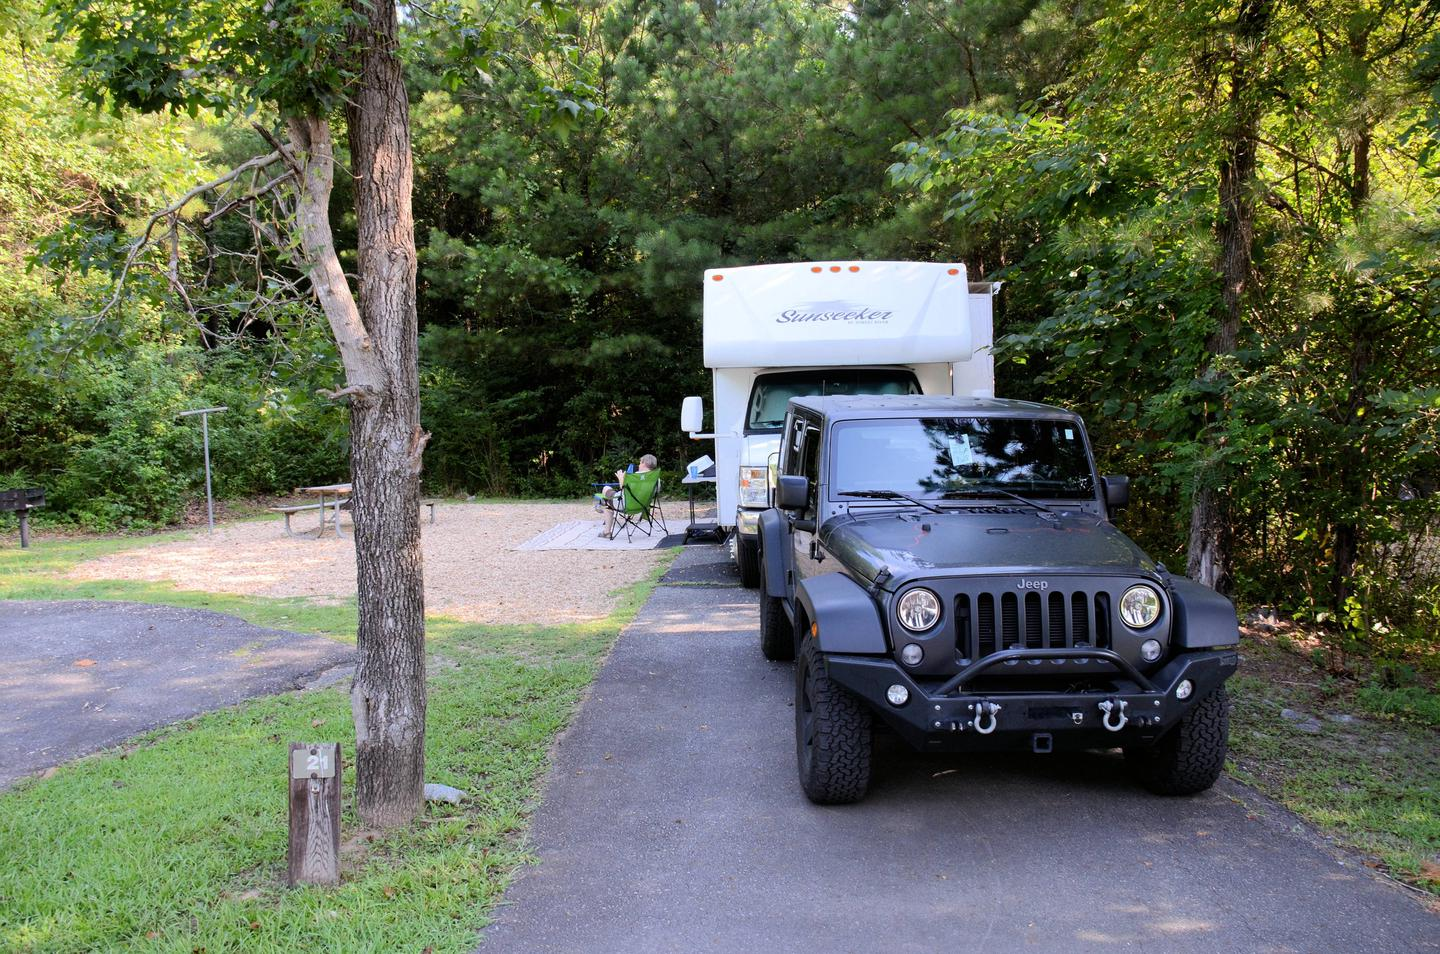 Awning-side clearance, campsite view.Payne Campground, campsite 21.